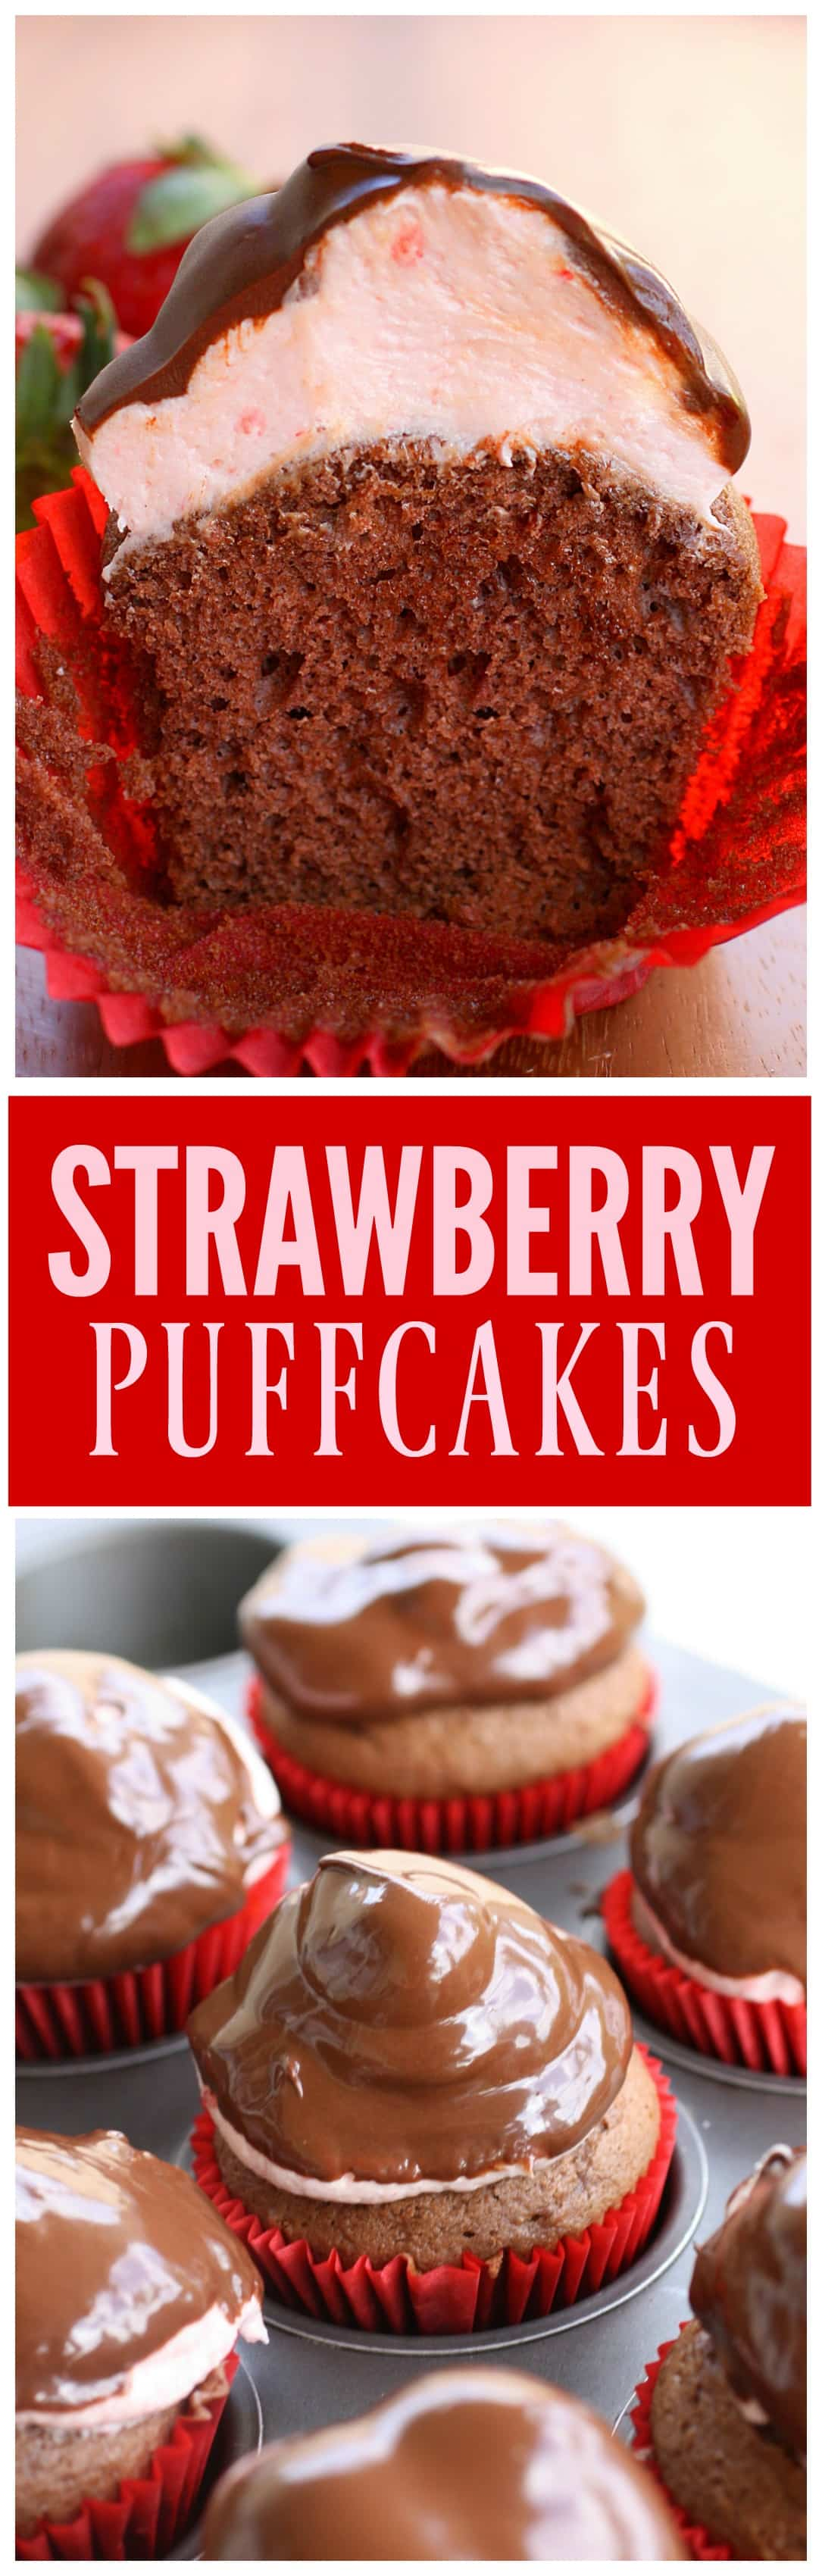 Strawberry Puffcakes - chocolate cupcakes topped with strawberry cream and dipped in chocolate. the-girl-who-ate-everything.com